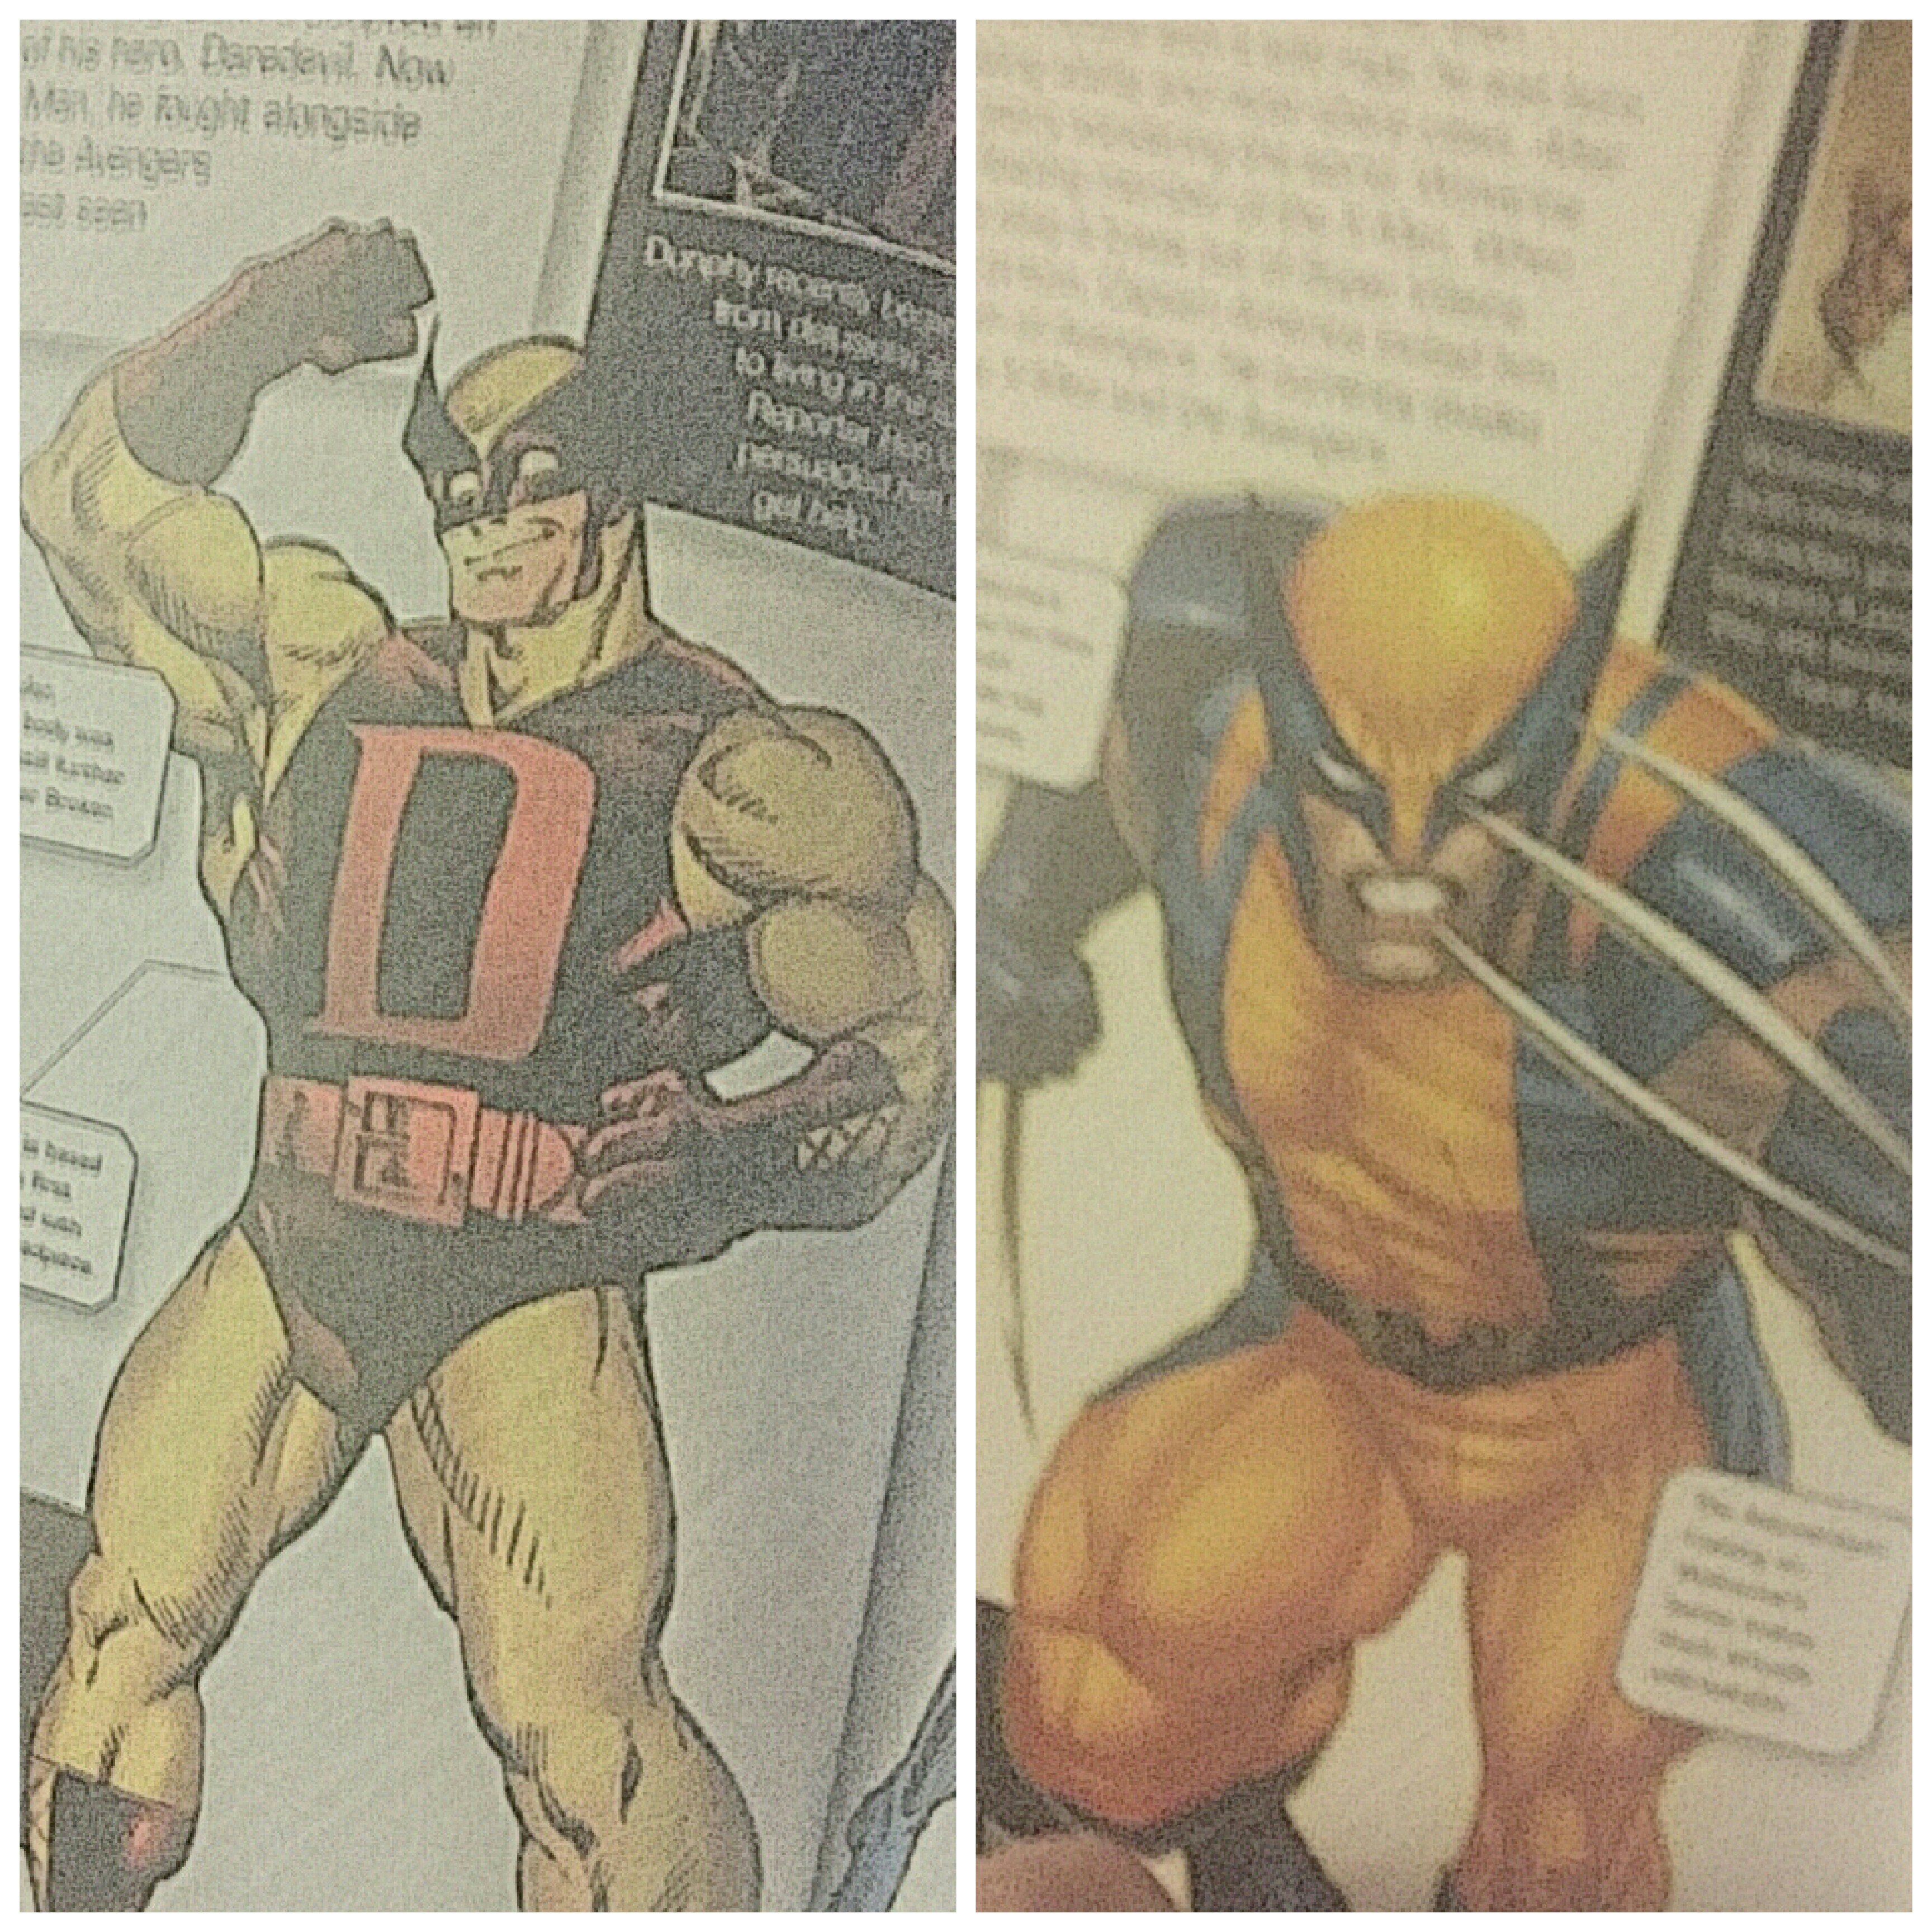 Demolition Man and Wolverine from Marvel - The Ultimate Character Guide